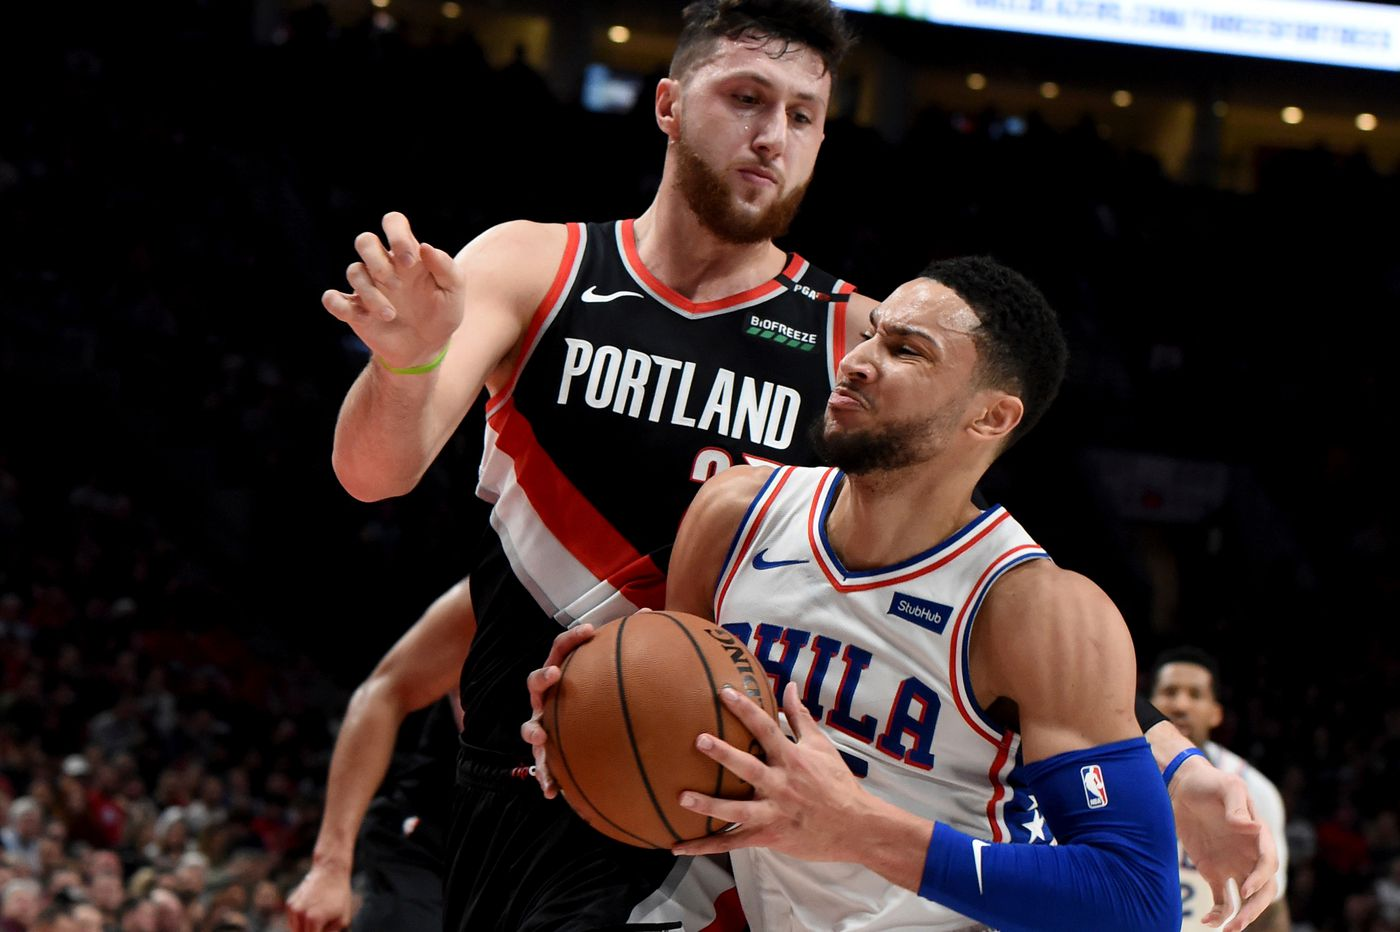 Sixers-Blazers observations: Defensive woes aren't going away, and mounting need for a roster addition